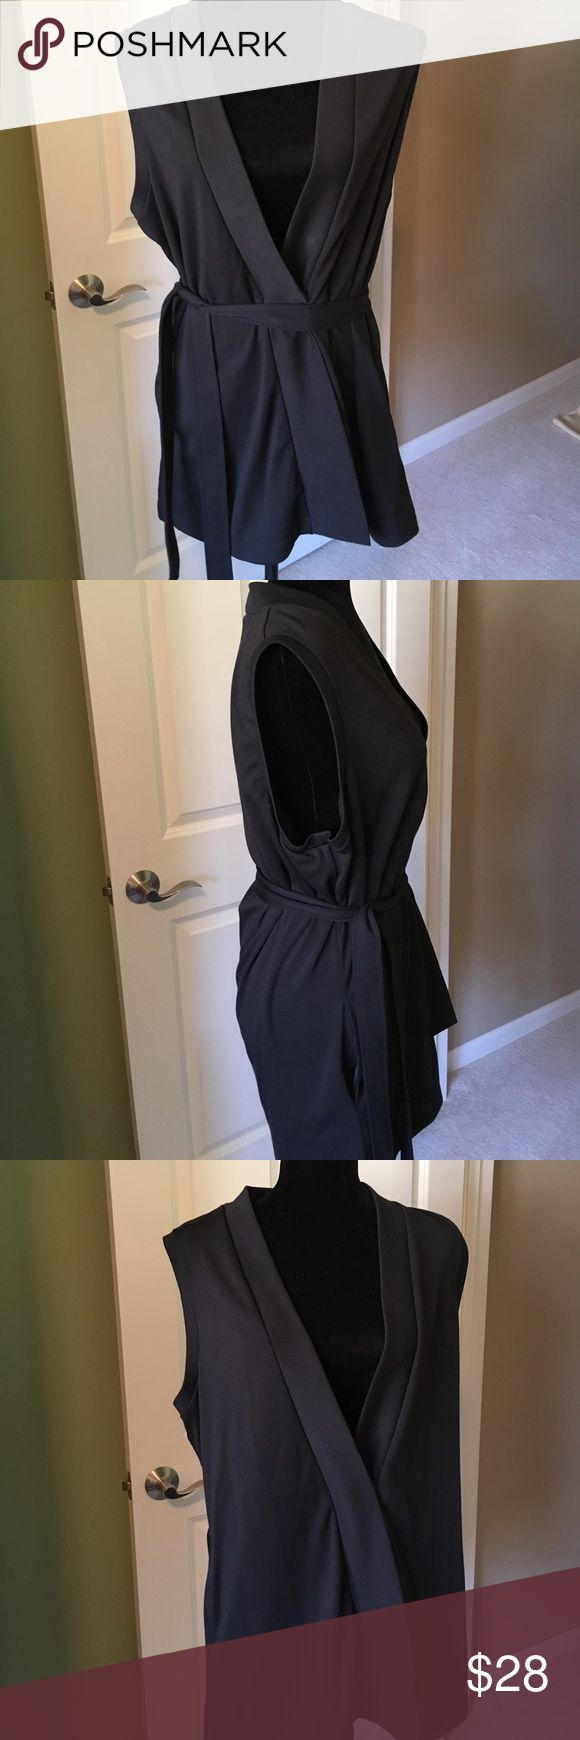 "Susan Graver Long Black Vest w/belt has pockets Susan Graver ""M"" long black vest with one snap, belt and pockets, tunic length covers rear. Versatile Susan Graver Jackets & Coats Vests"